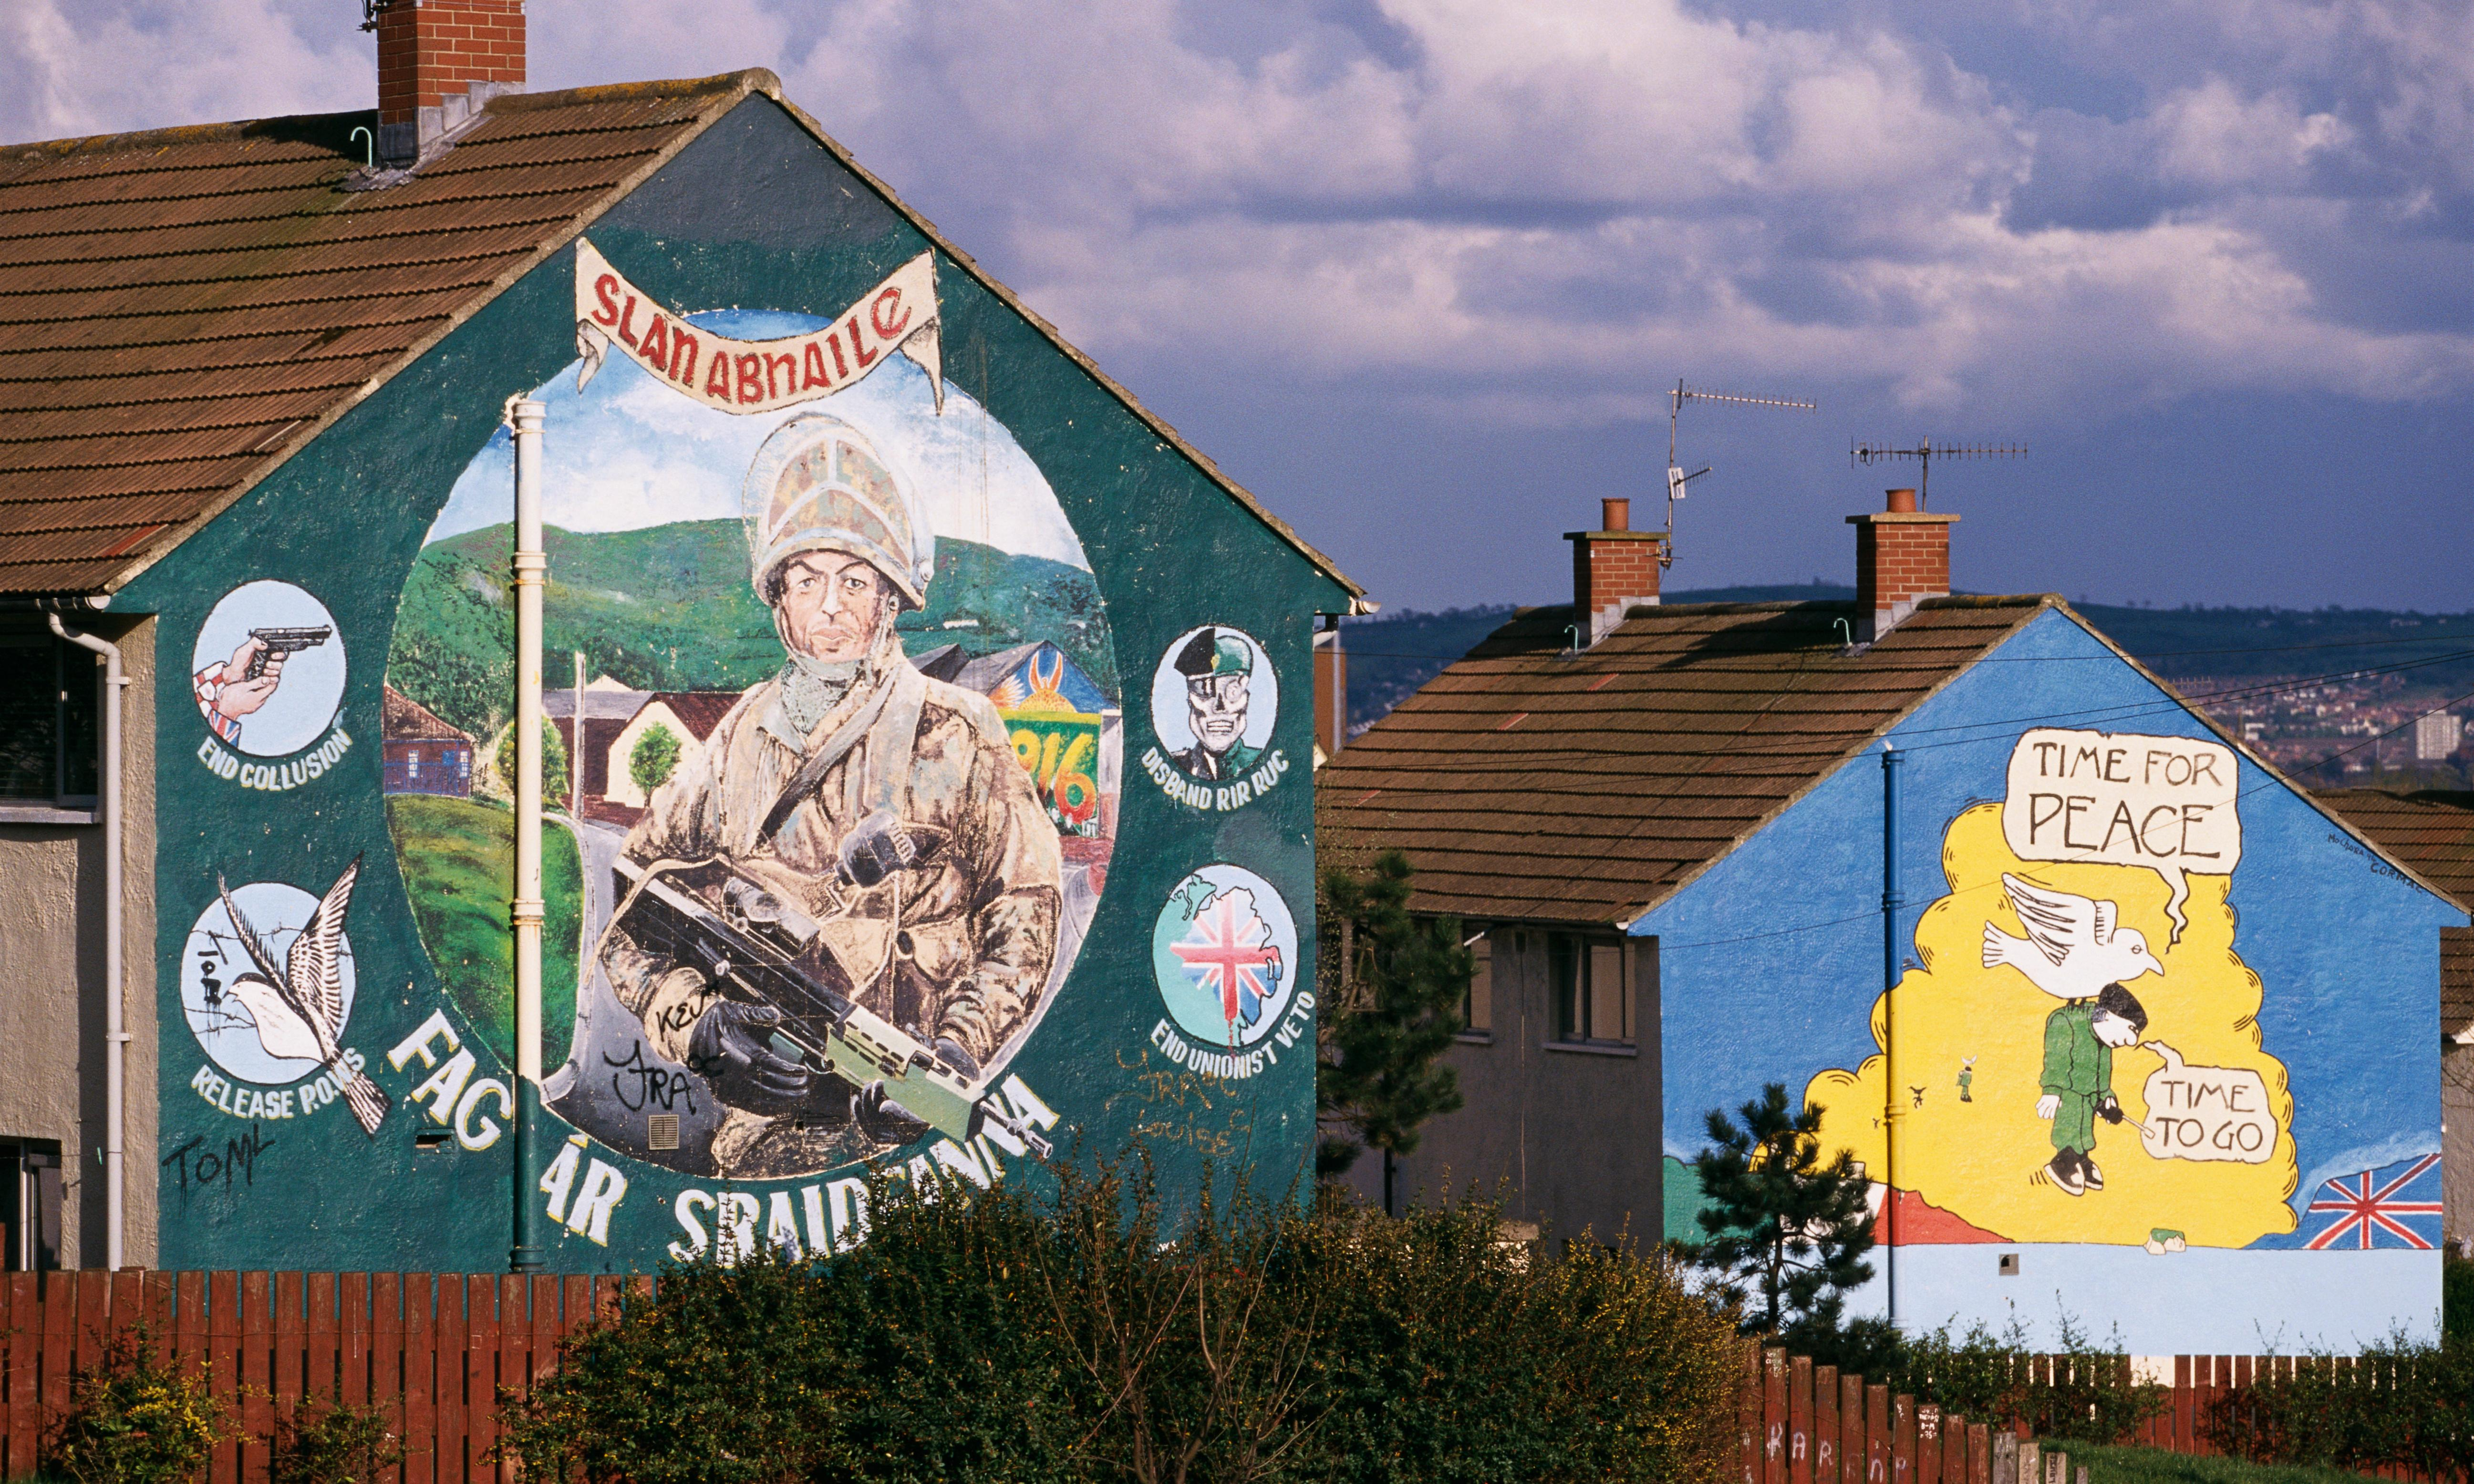 David Keenan on Belfast: 'It's like a different planet, where different rules apply'